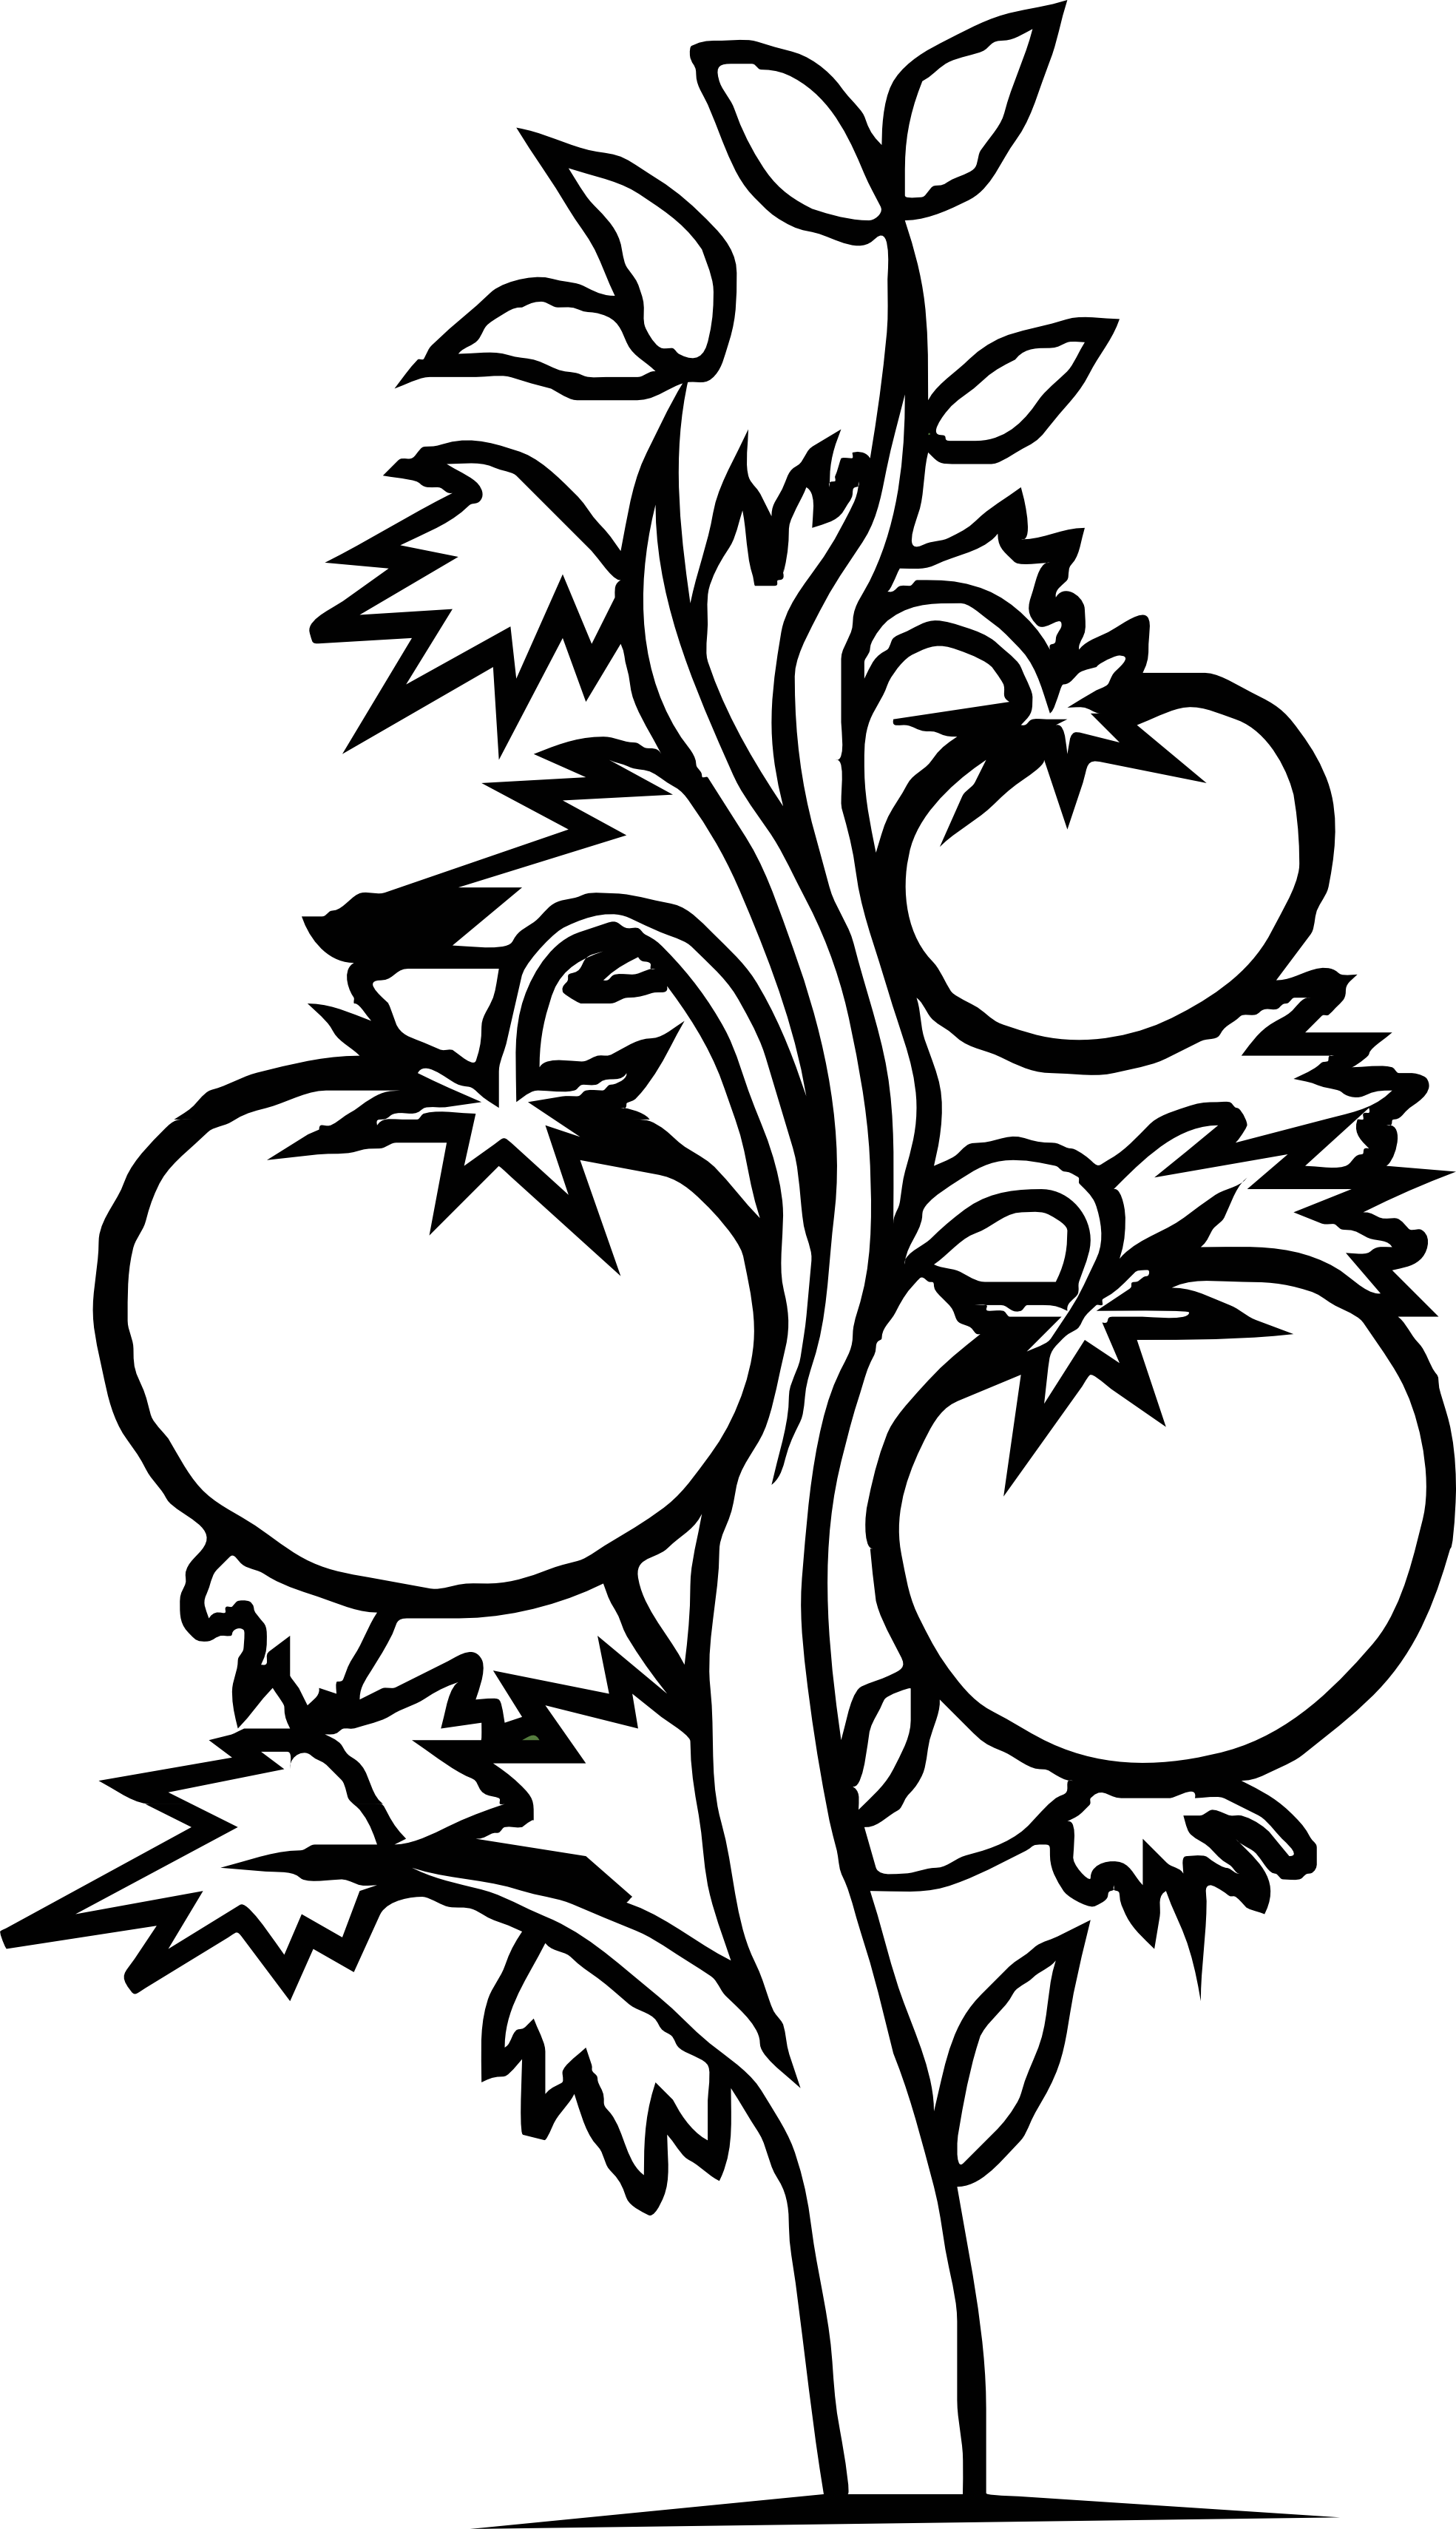 black and white vegetable garden clipart - Clipground